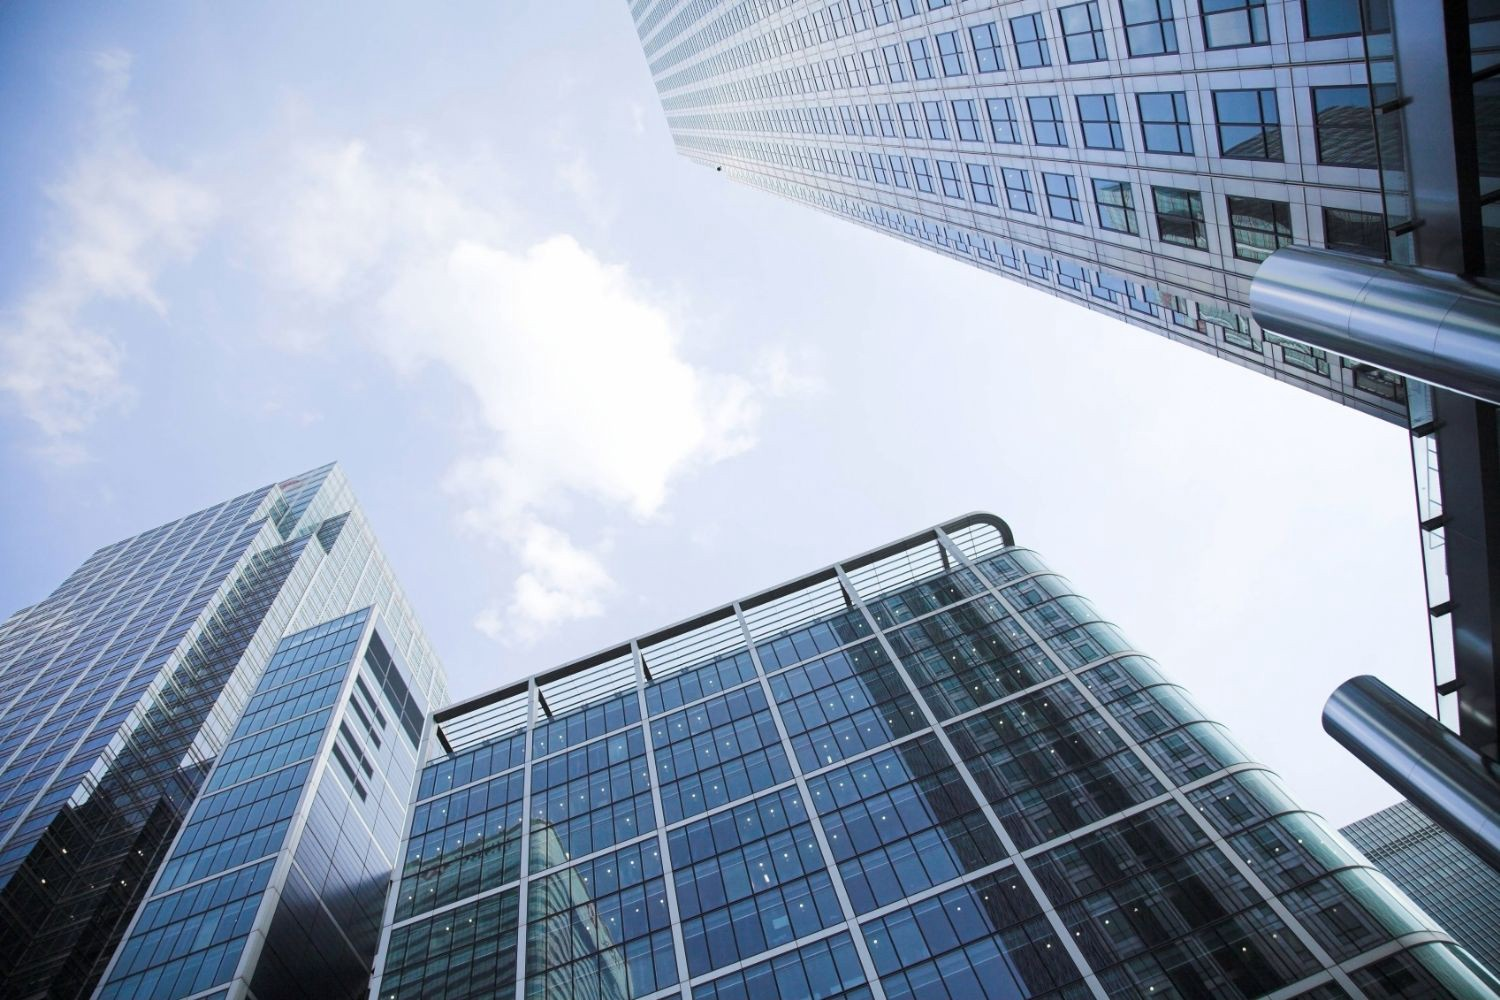 Commercial Real-Estate is Tricky